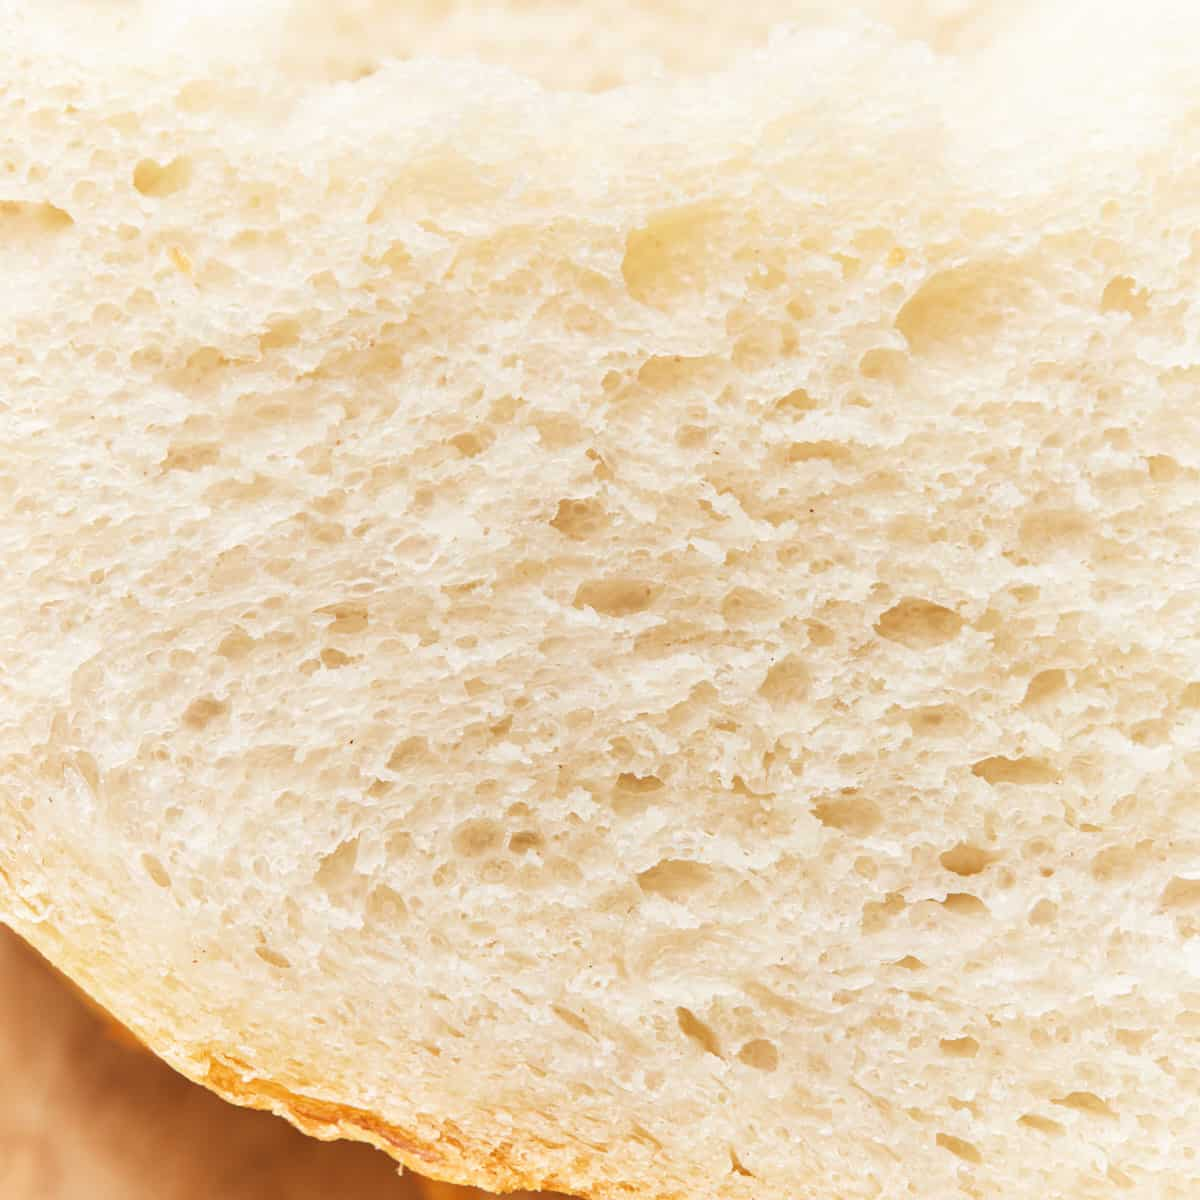 Close up of the bread crumb structure